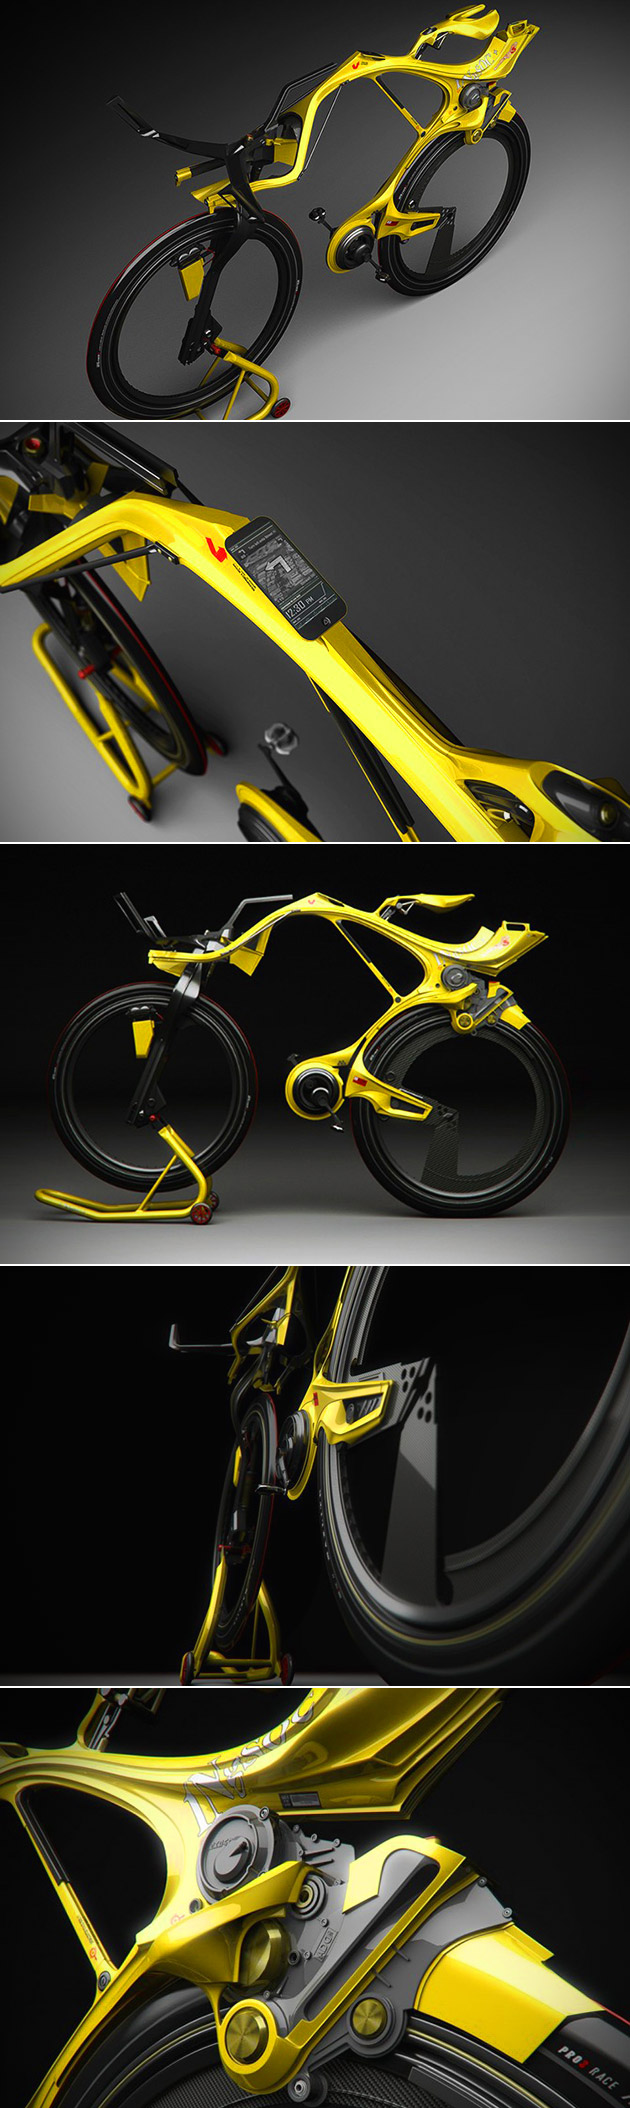 Chainless Hybrid Bike